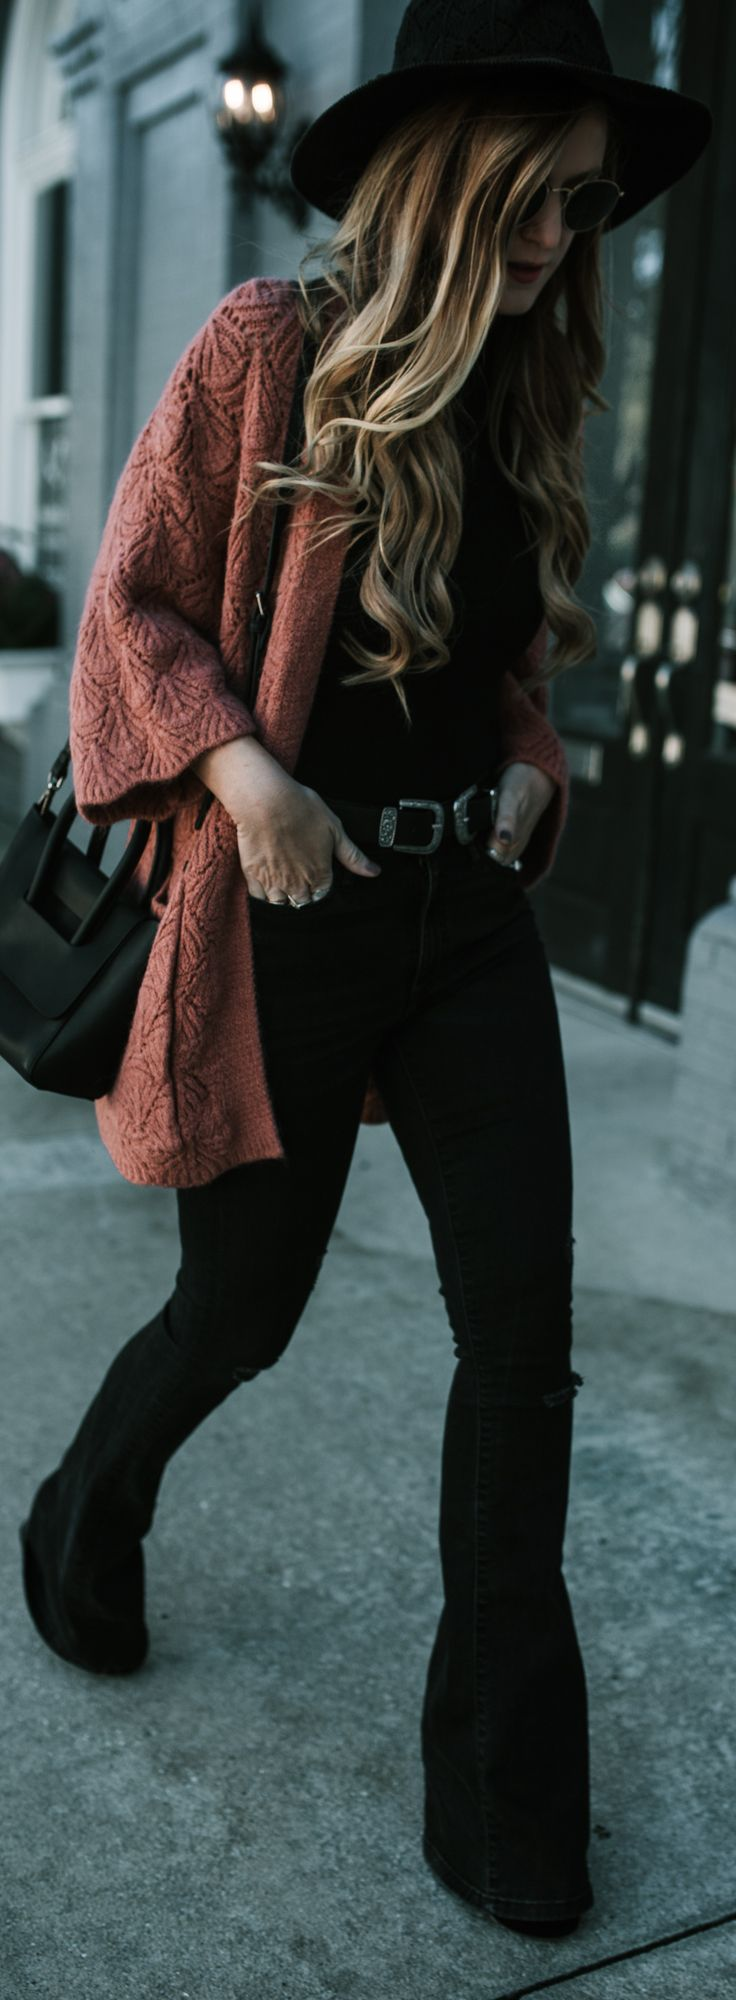 Boho winter outfit styled with coral cozy cardigan, black flared jeans, and doub…